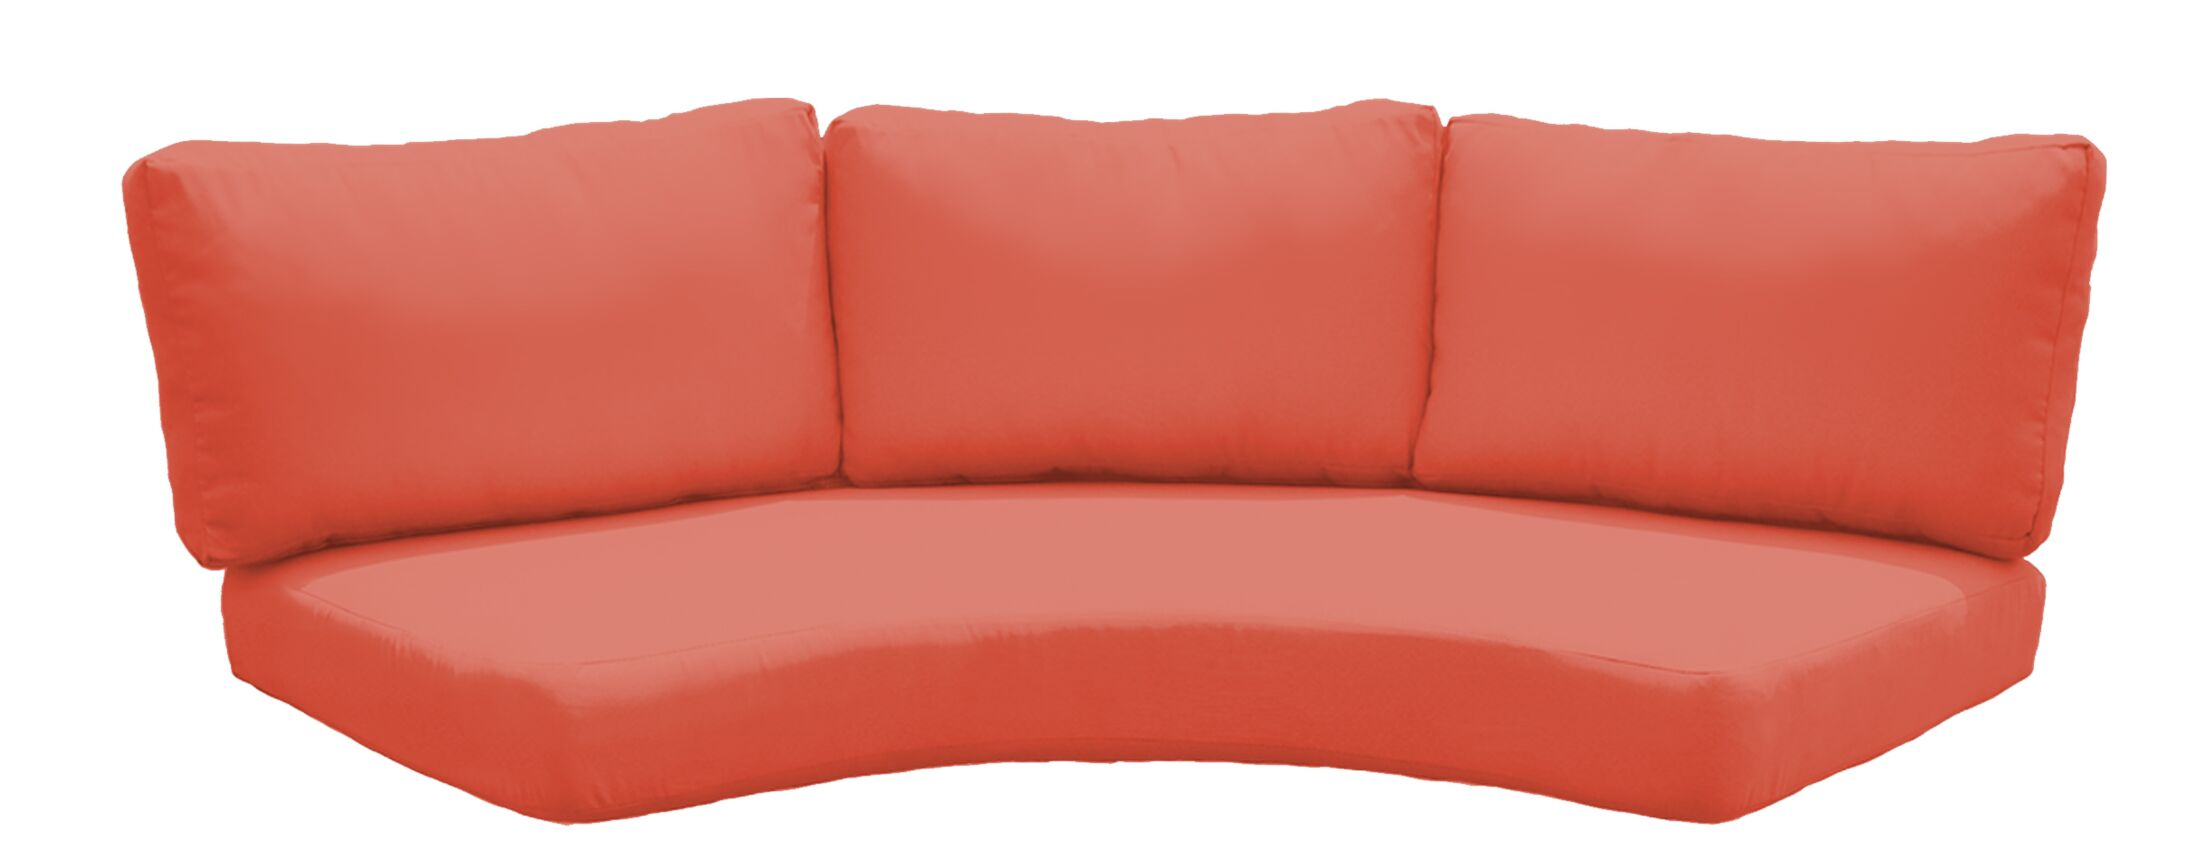 Outdoor Replacement Cushion Set Fabric: Tangerine